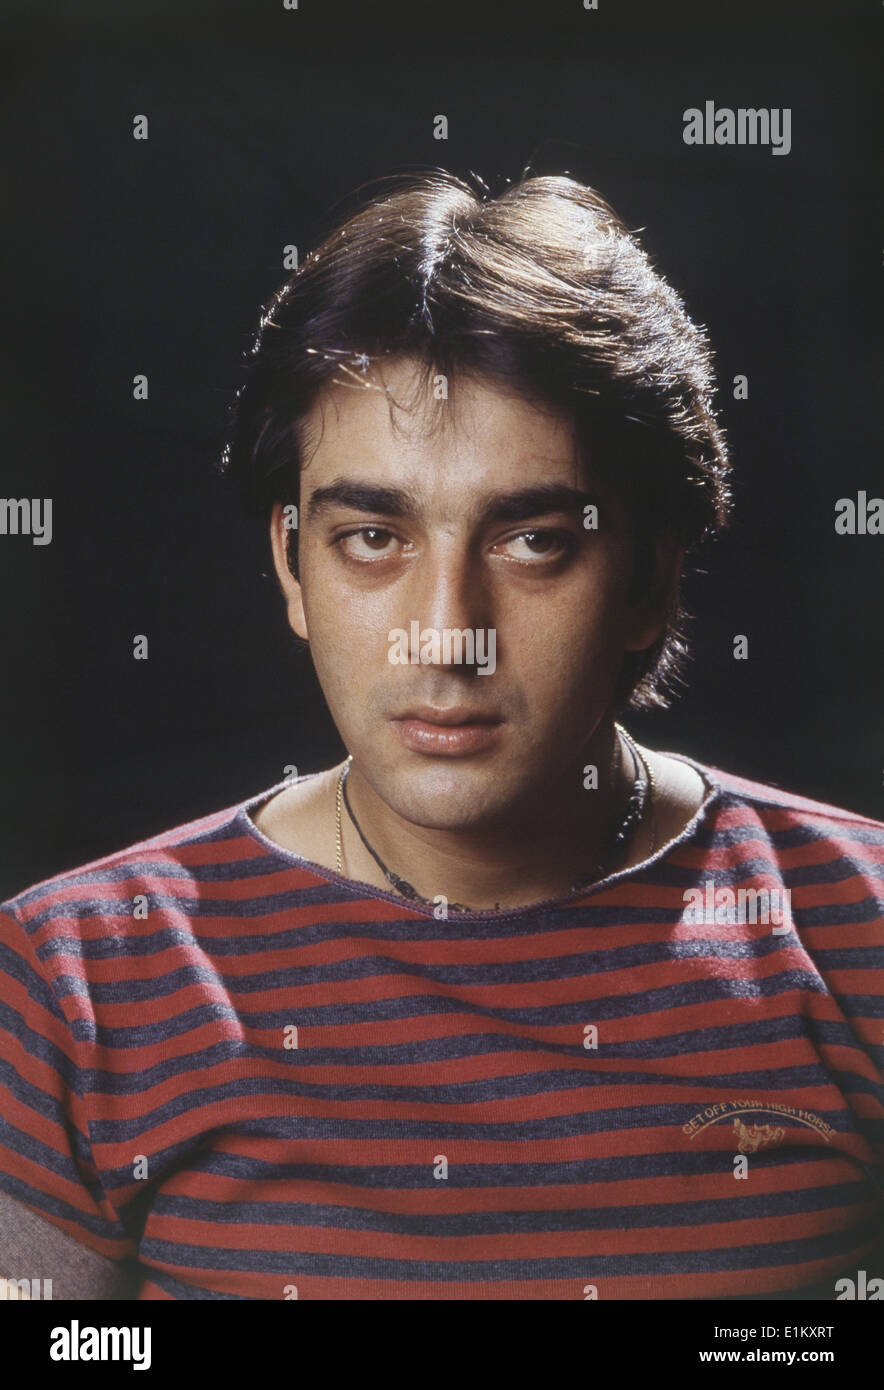 Portrait of Indian film actor Sanjay Dutt Stock Photo ...